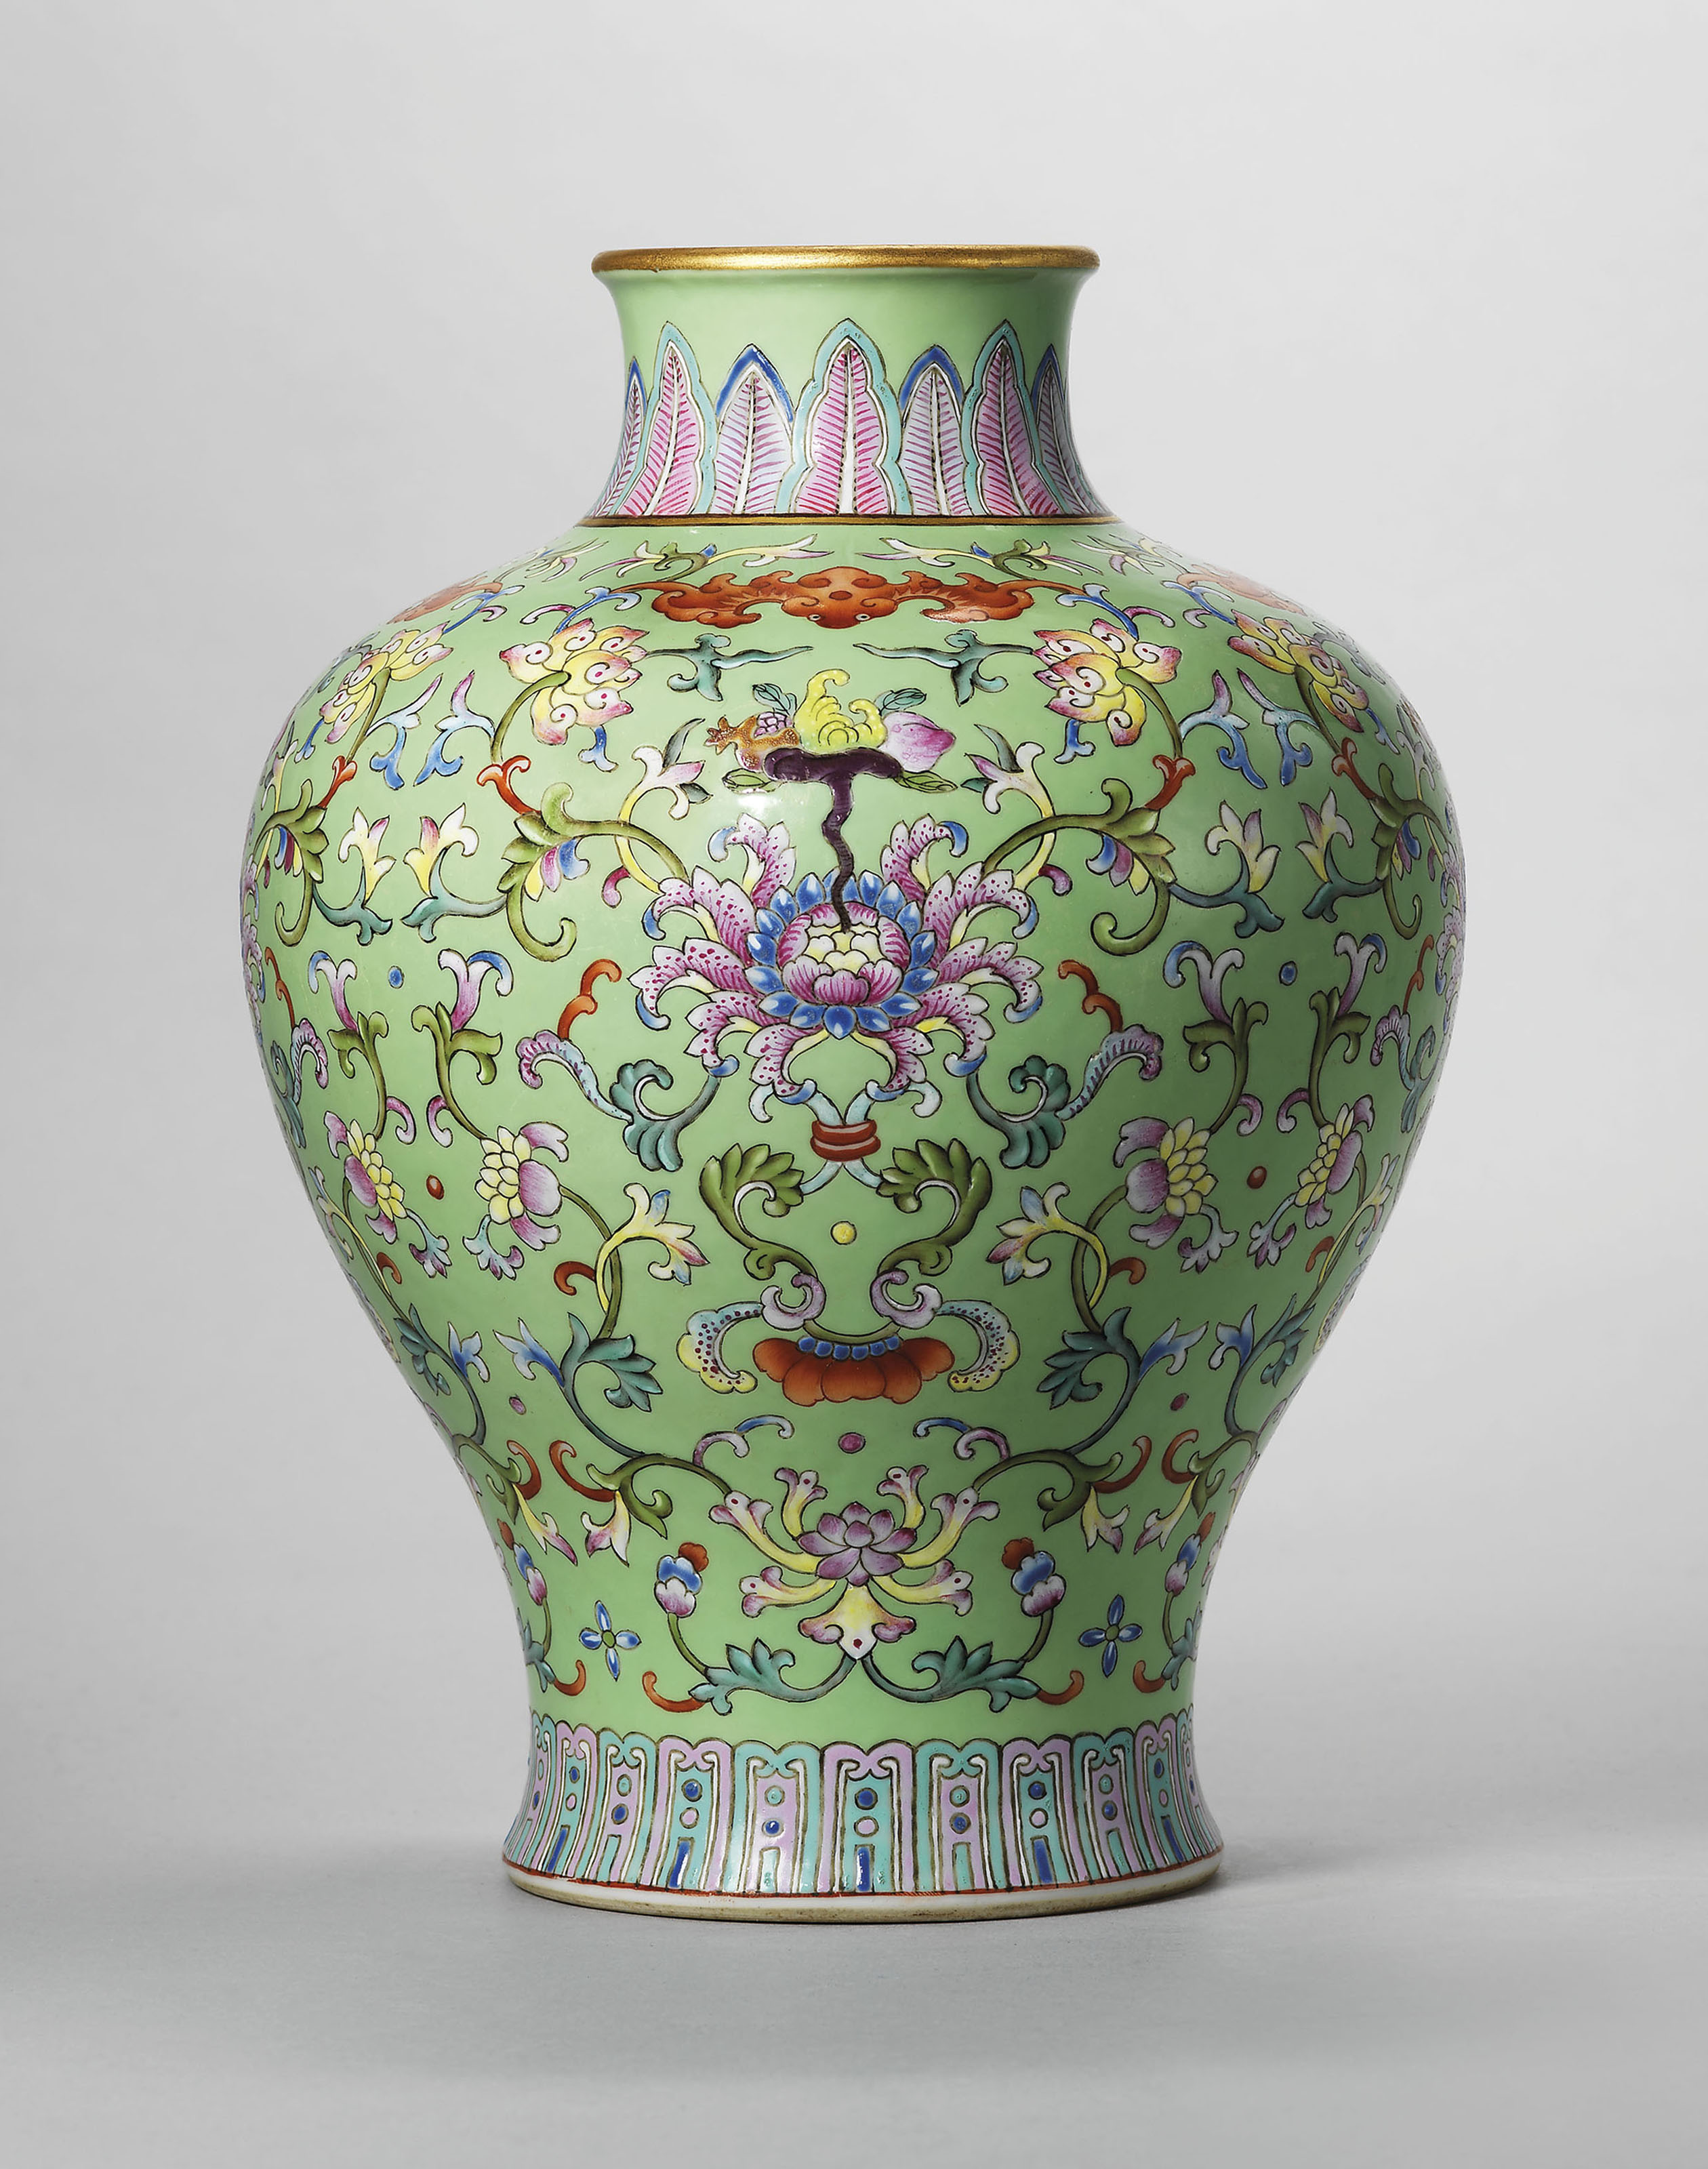 A guide to the symbolism of flowers on Chinese ceramics | Christie's